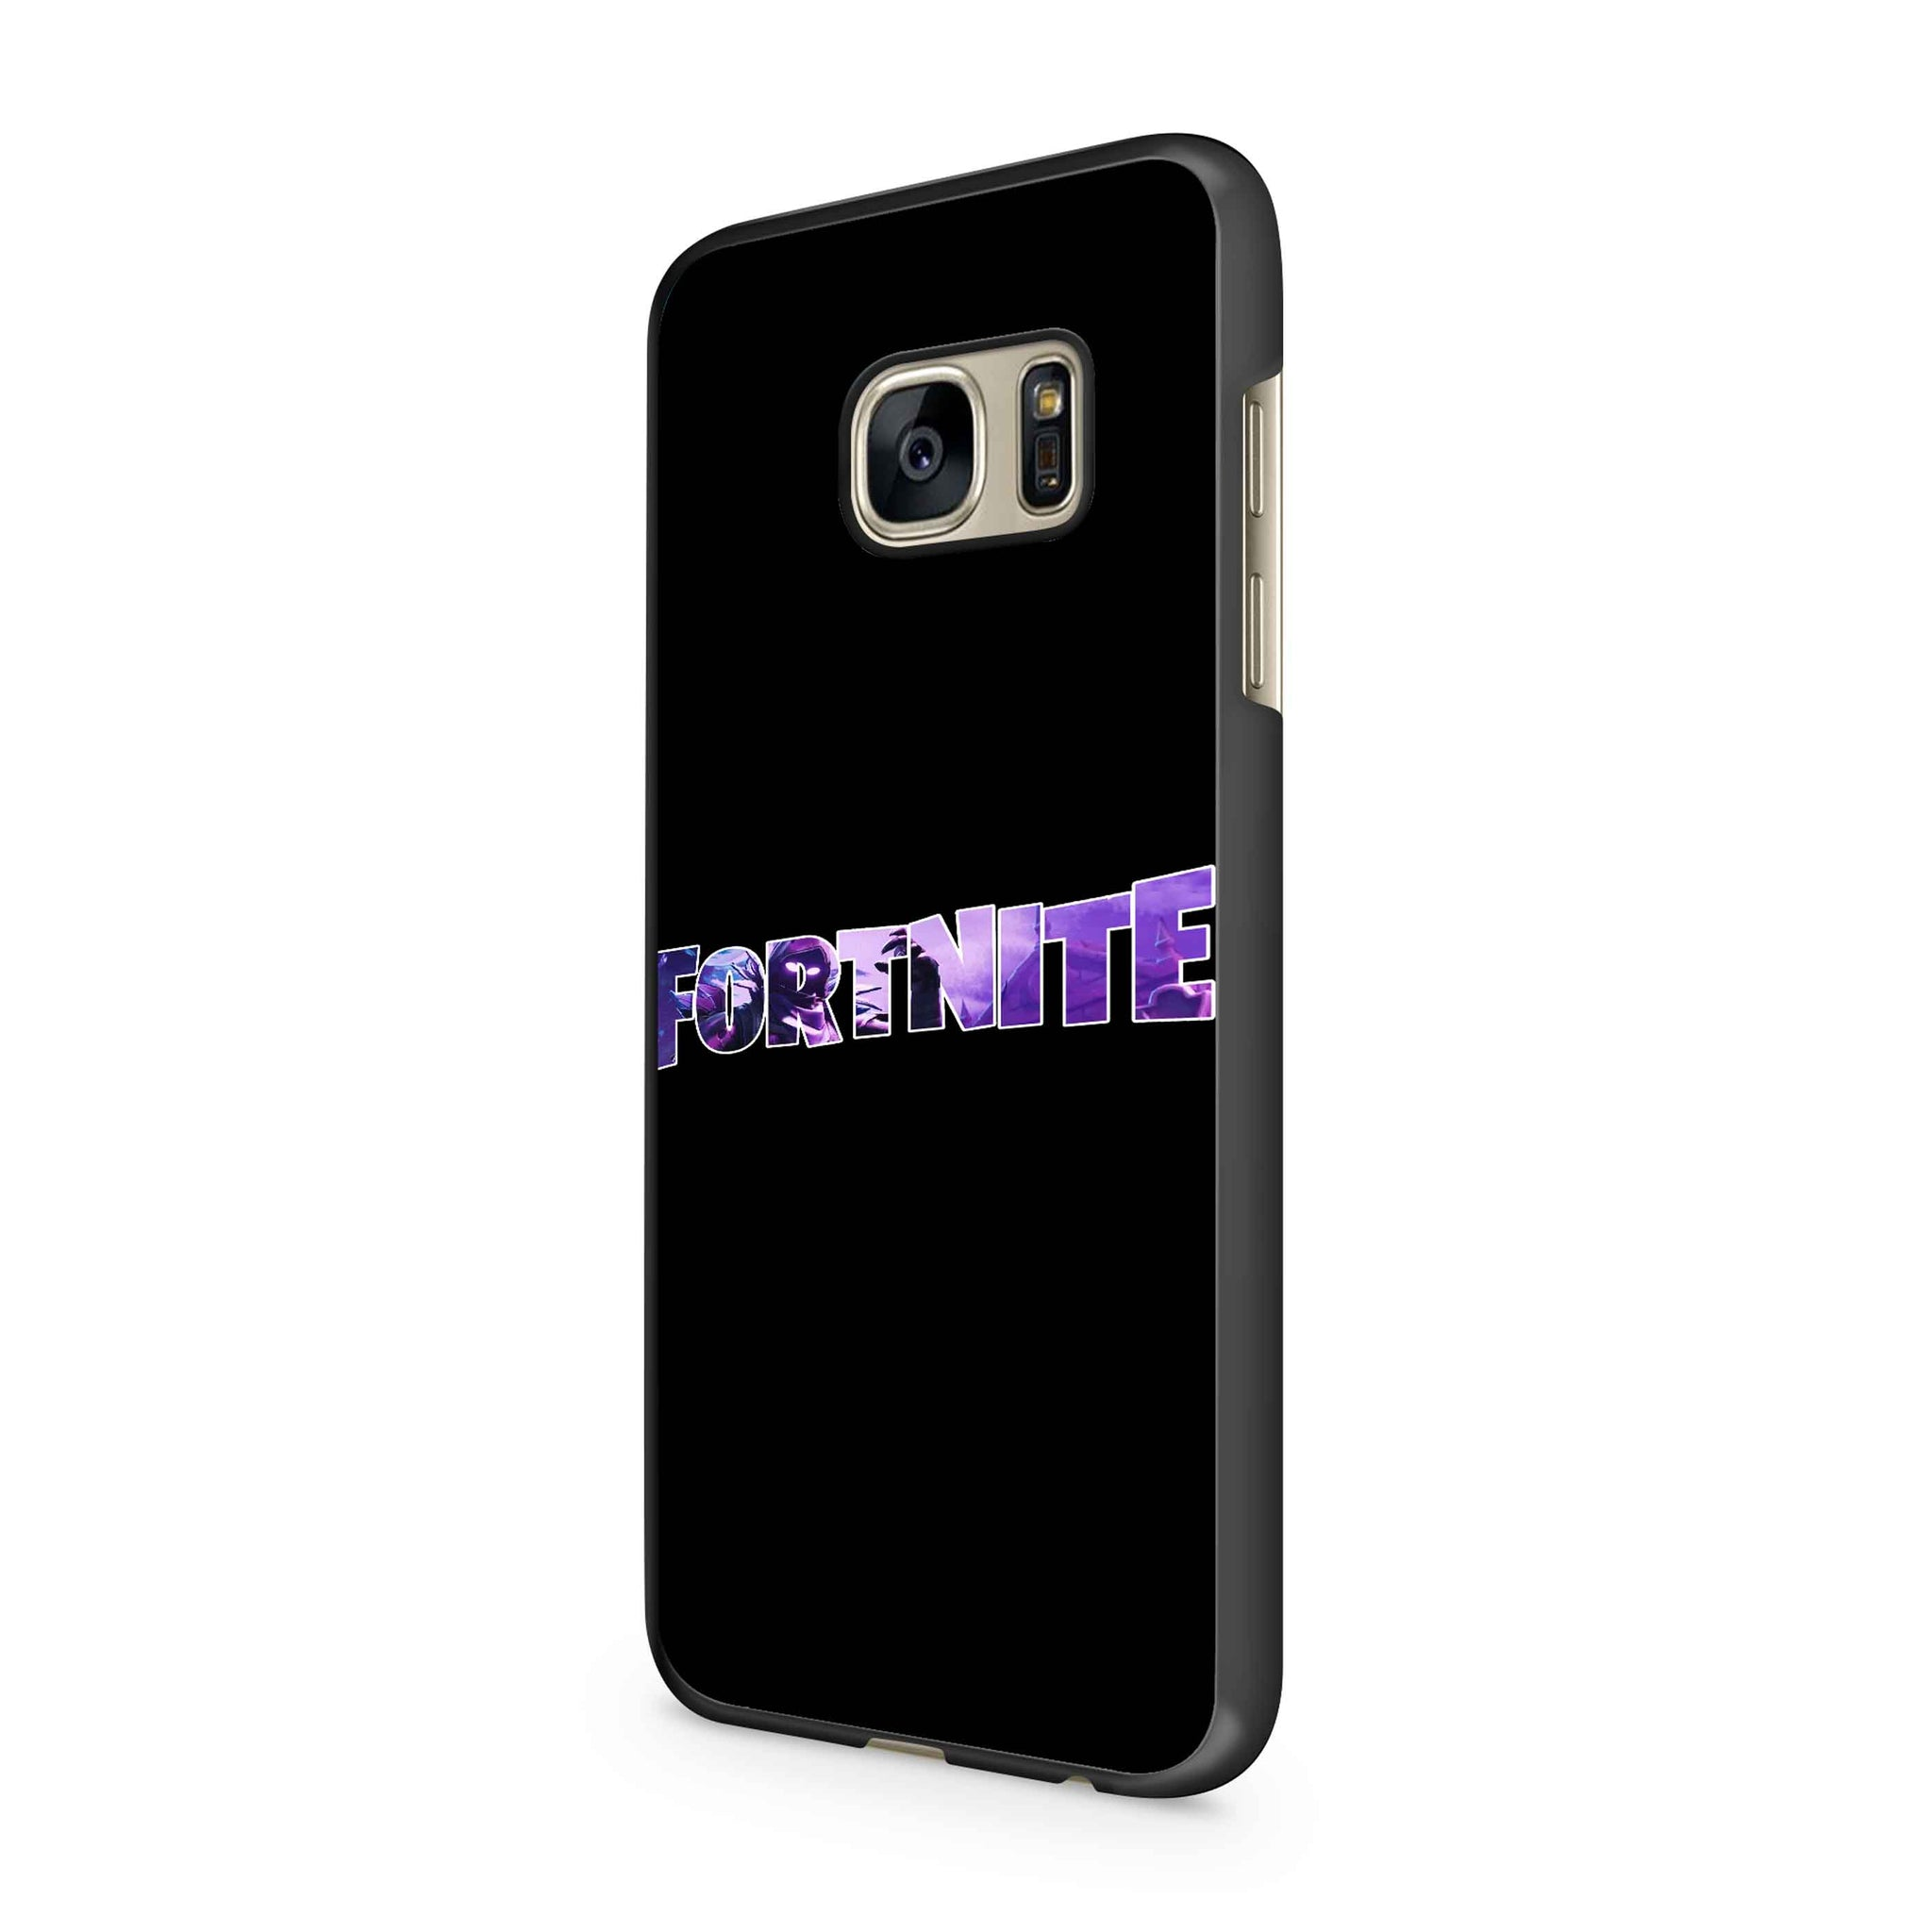 Fortnite Dark Samsung Galaxy S7 / S7 Edge Case